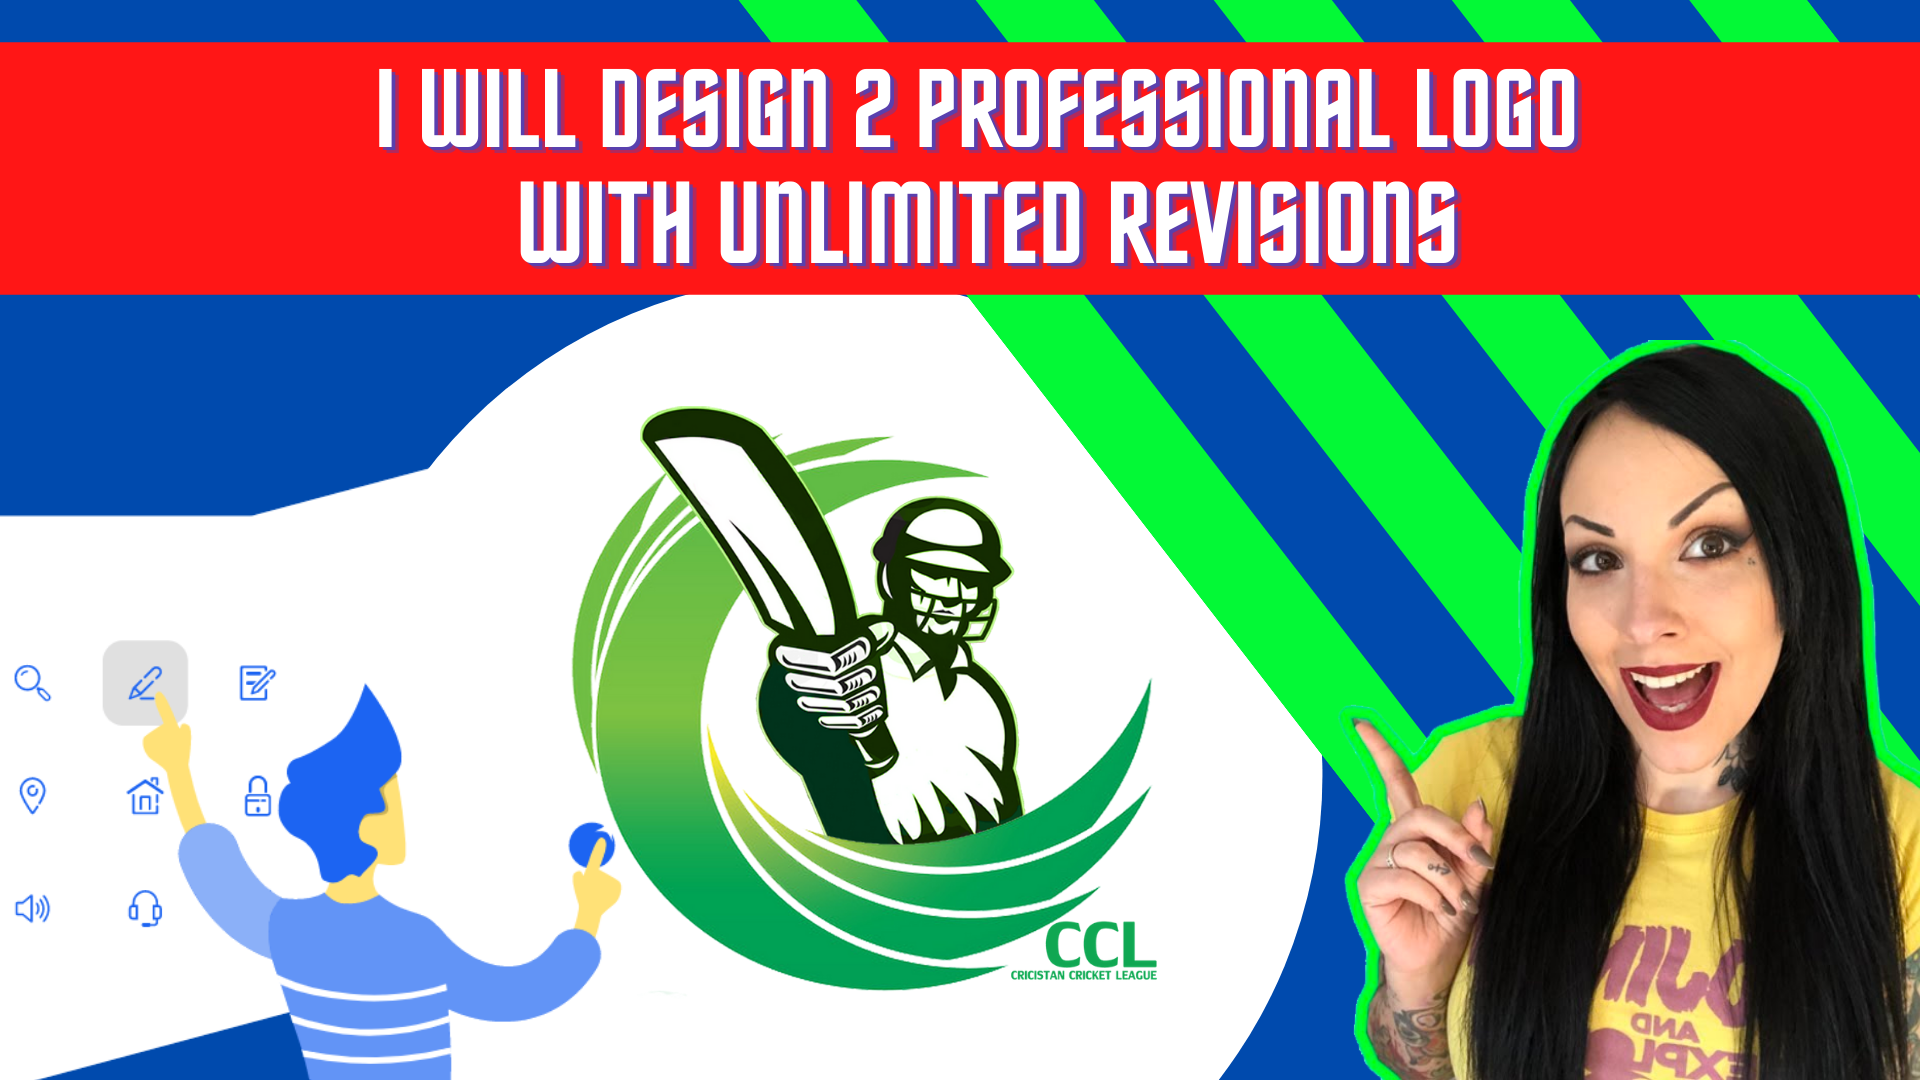 I will design 2 professional logo with unlimited revisions